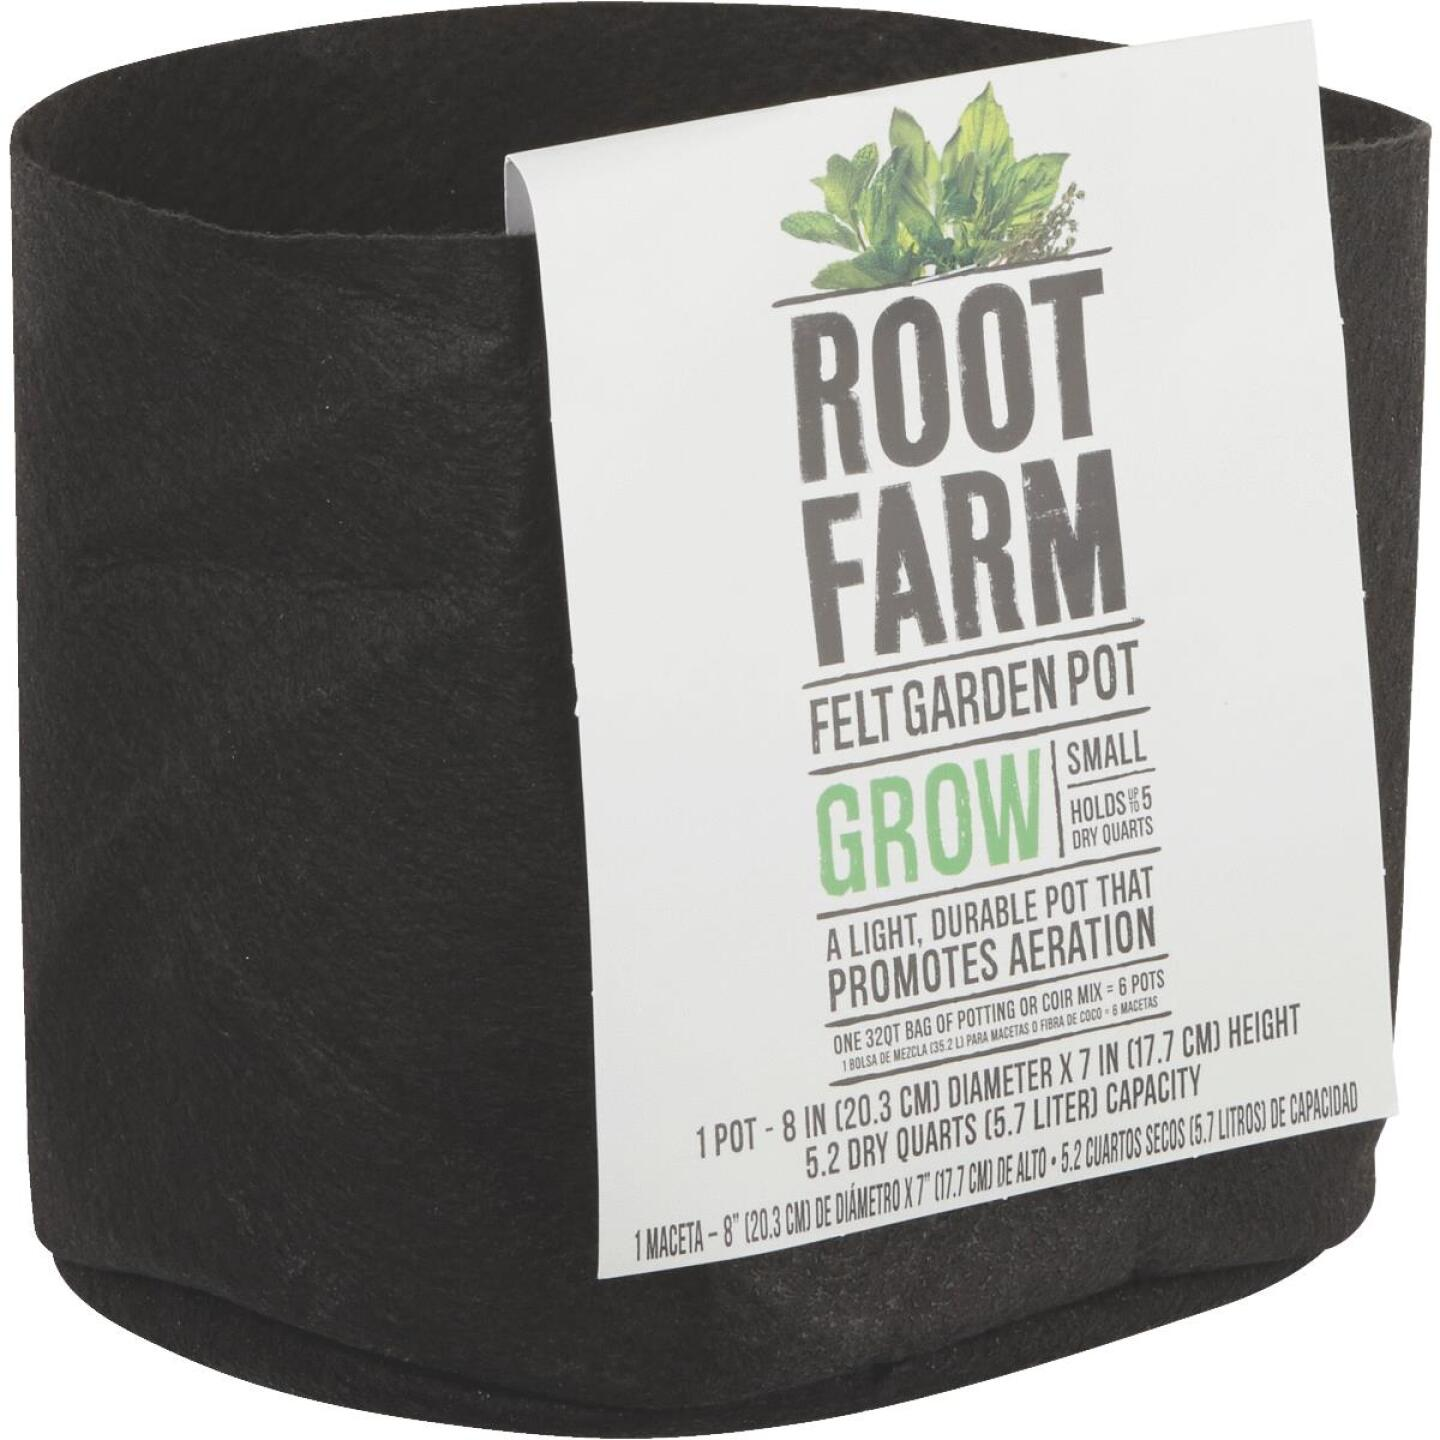 Root Farm Felt Small Garden Pot Image 1